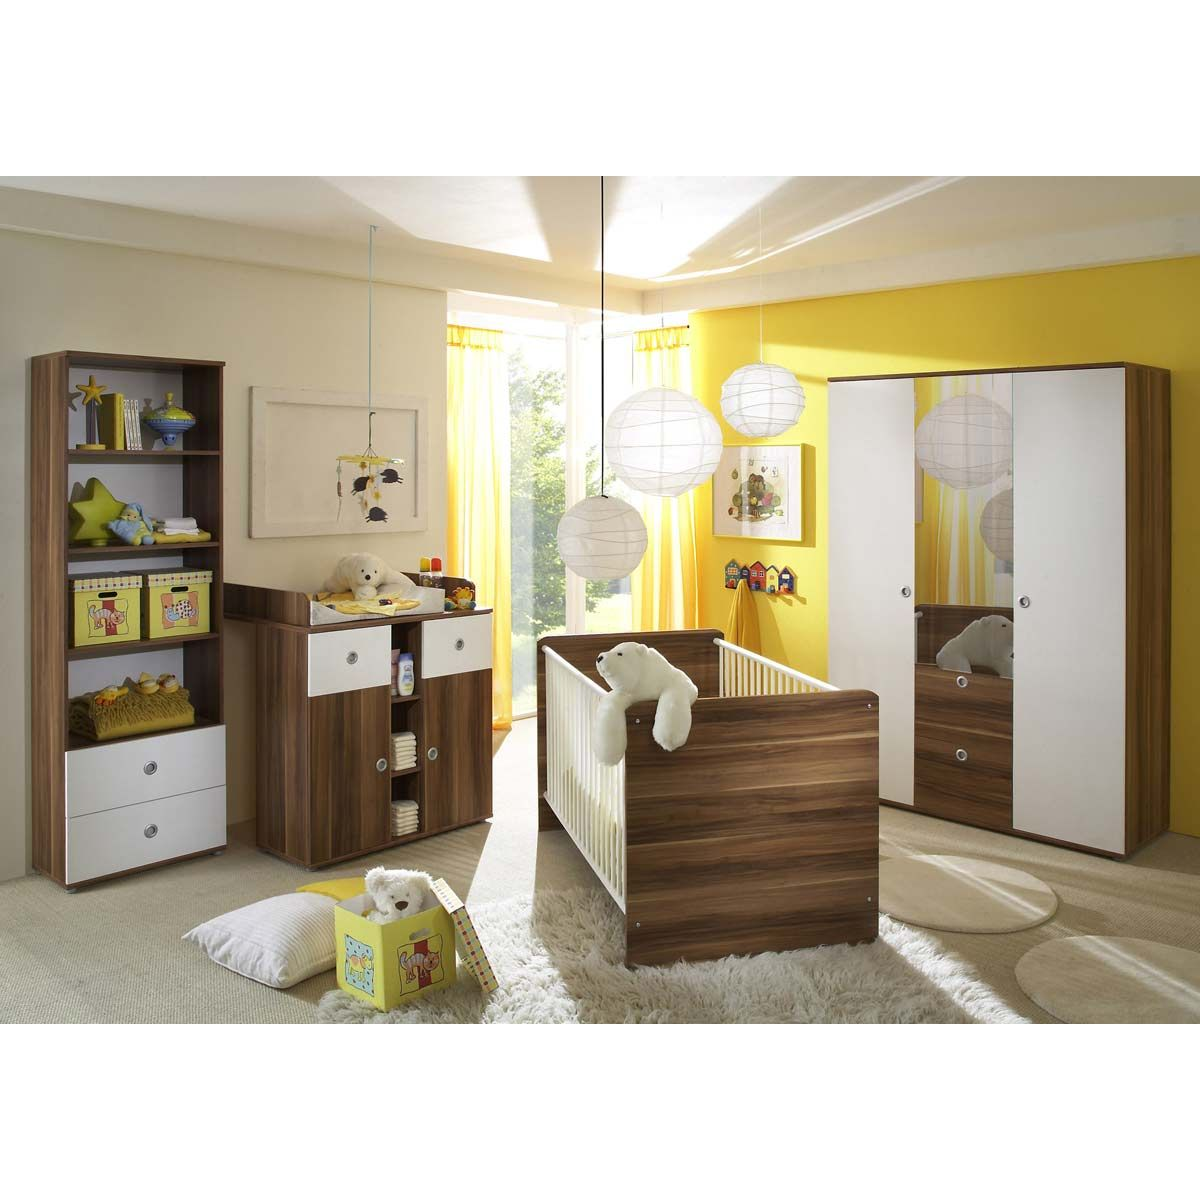 ticaa milu babyzimmer walnuss wei 4 teilig portofrei. Black Bedroom Furniture Sets. Home Design Ideas